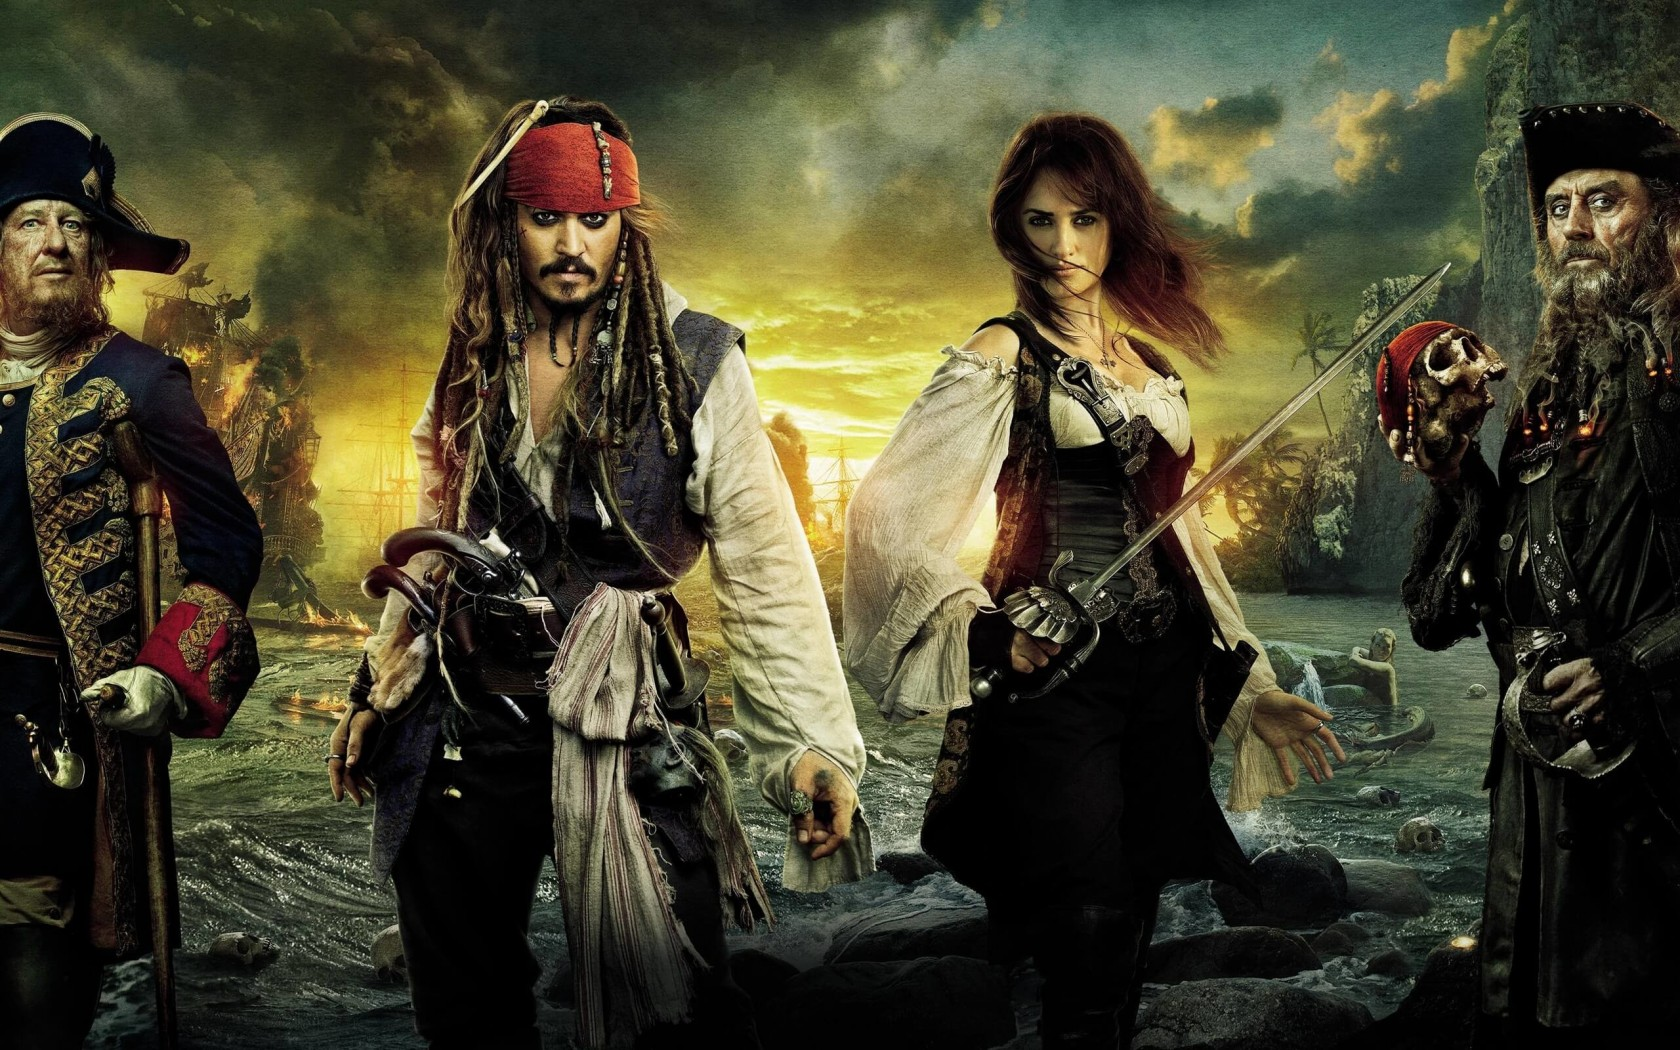 Pirates of the Caribbean: On Stranger Tides Characters Wallpaper for Desktop 1680x1050